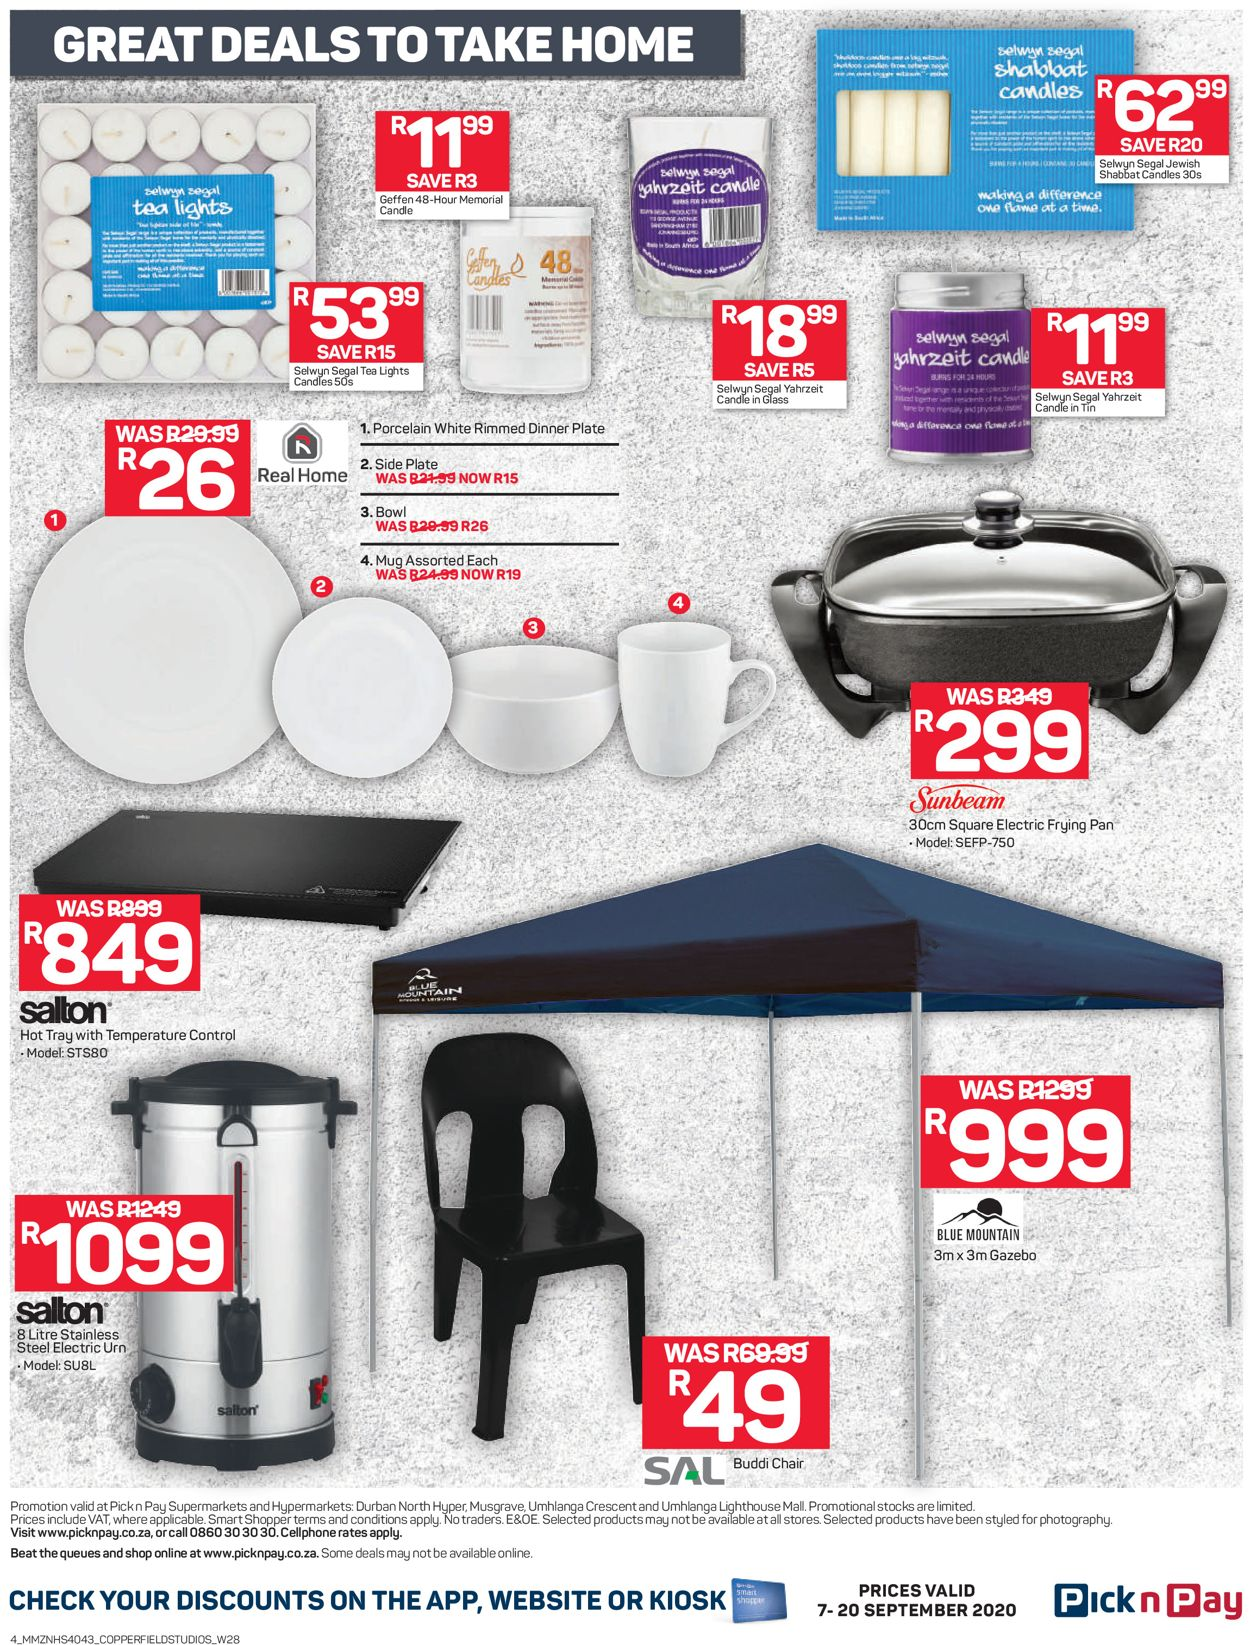 Pick n Pay Catalogue - 2020/09/07-2020/09/20 (Page 4)